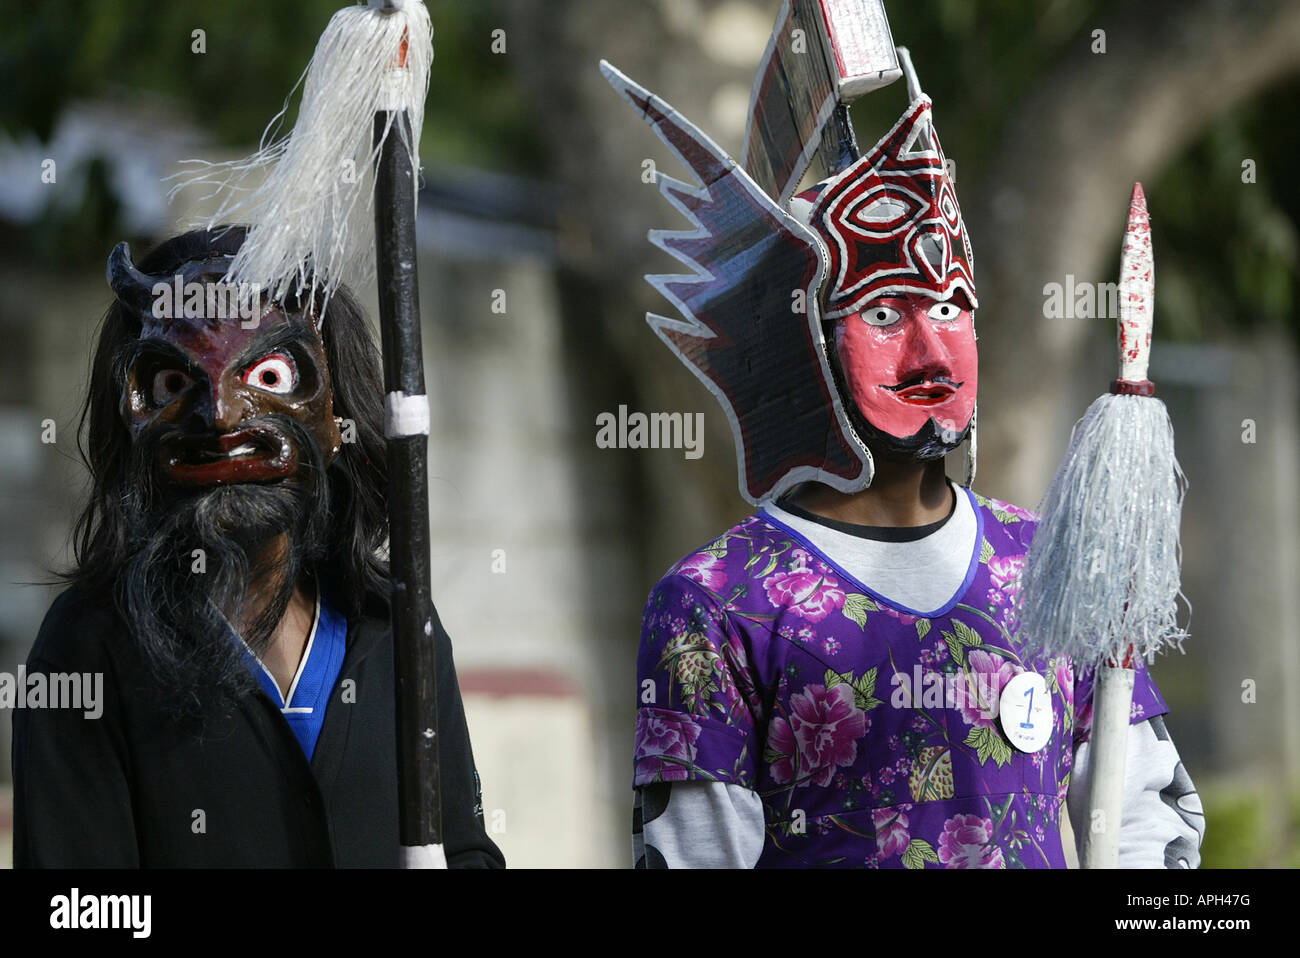 Filipino's portray Satan and a Roman soldier during Good Friday in Mansalay, Oriental Mindoro, Philippines. Stock Photo